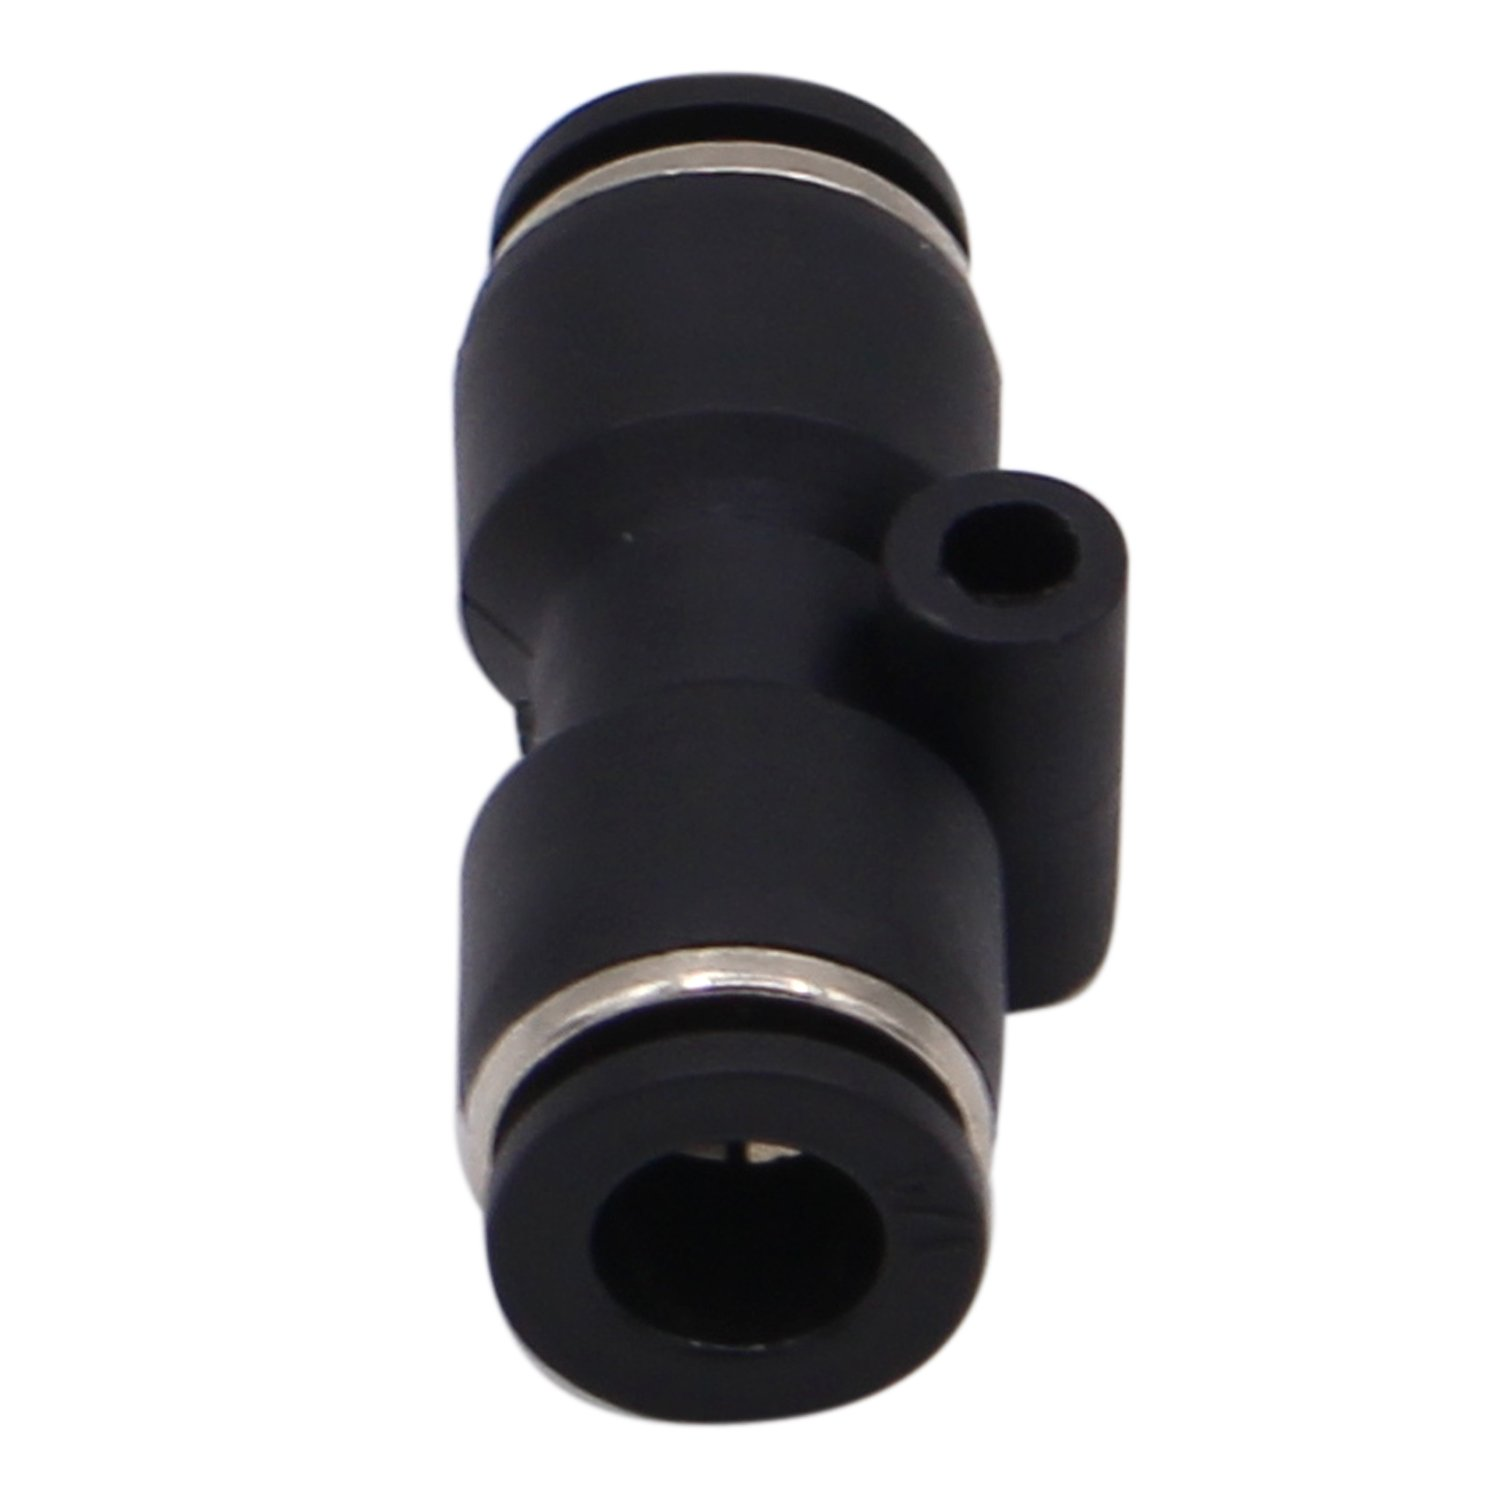 Plastic Push to Connect Fittings 1//4 inch Straight Tube Fittings Push Lock